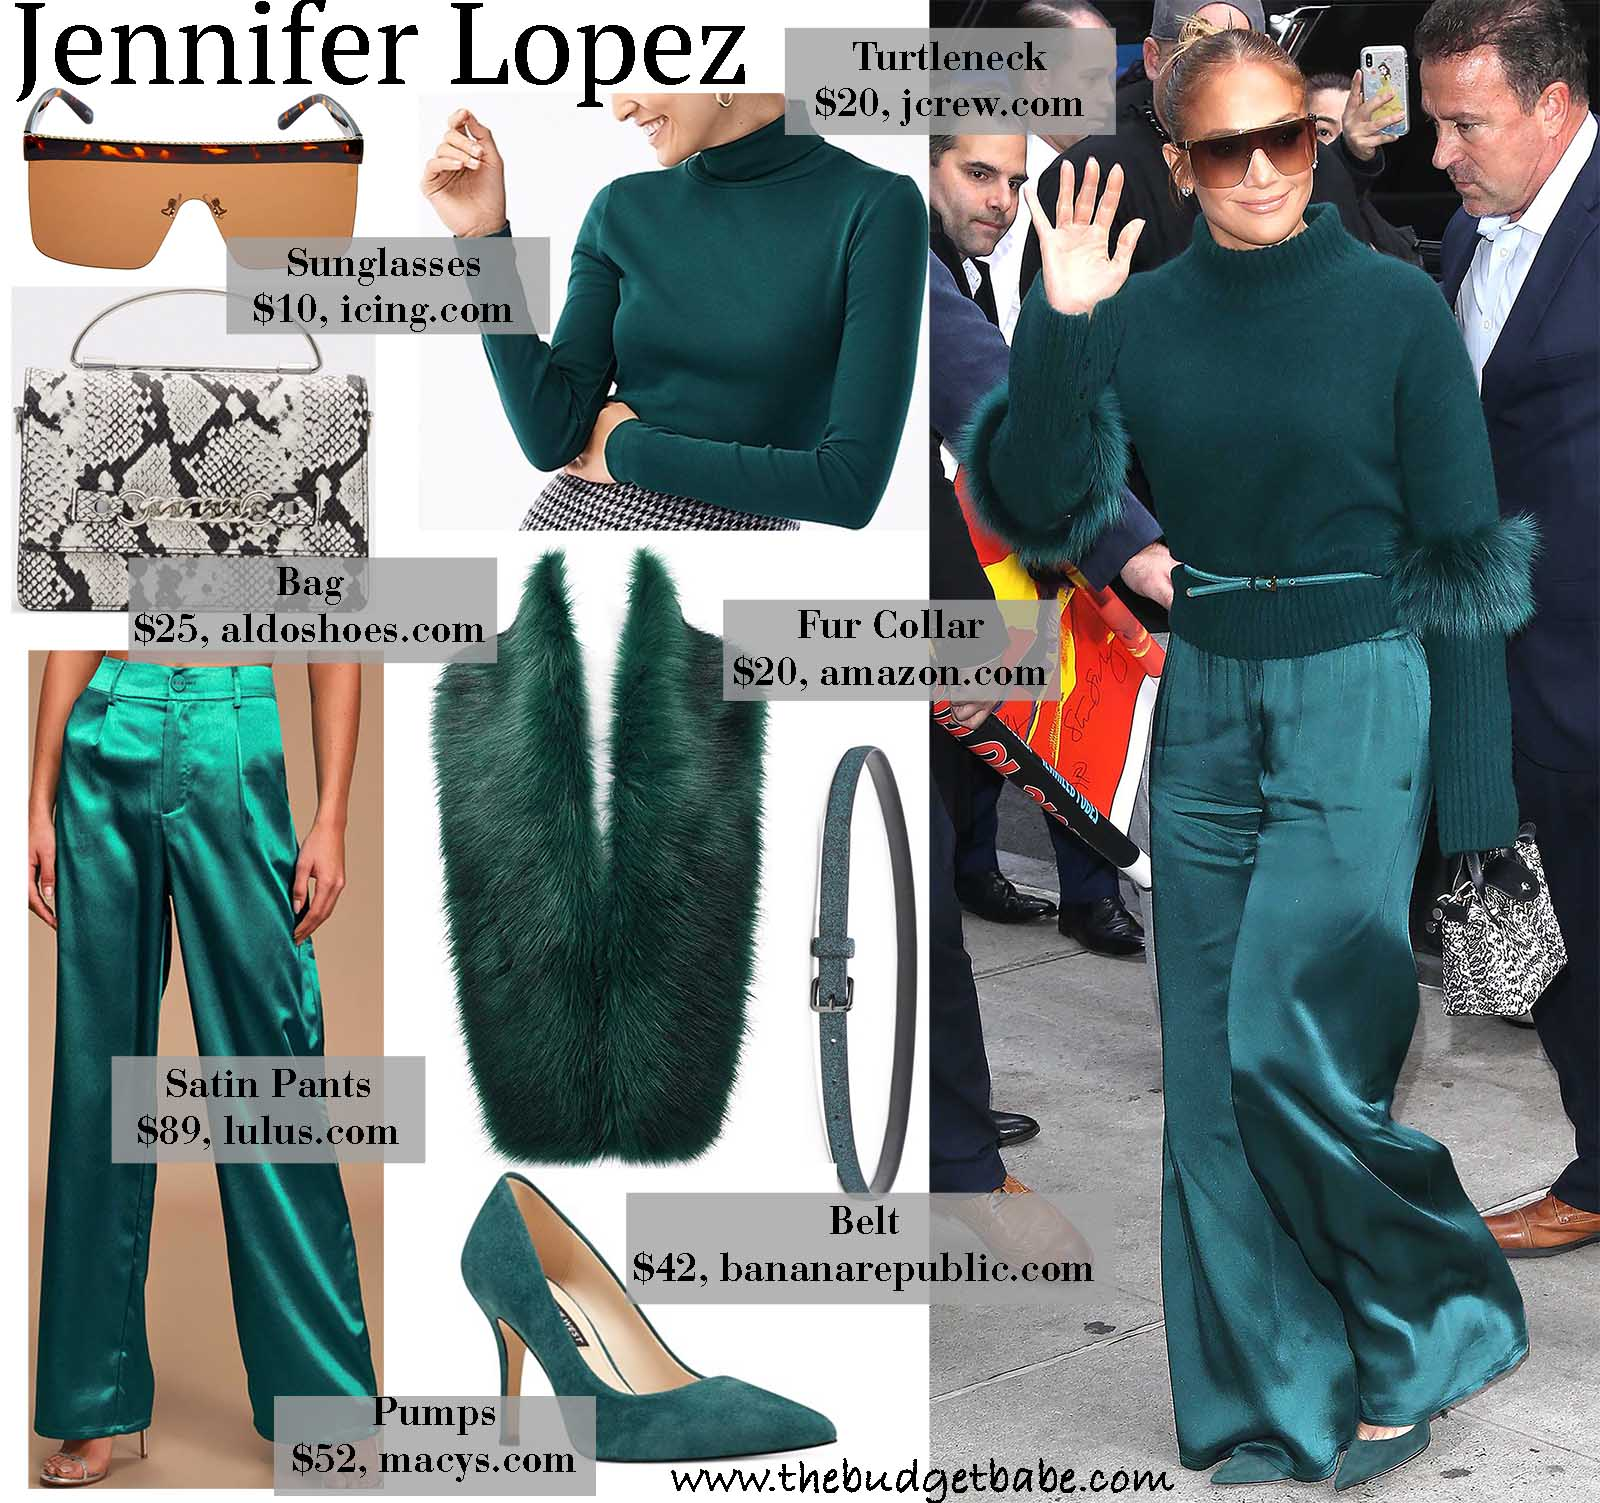 Jlo looks perfect in all green!